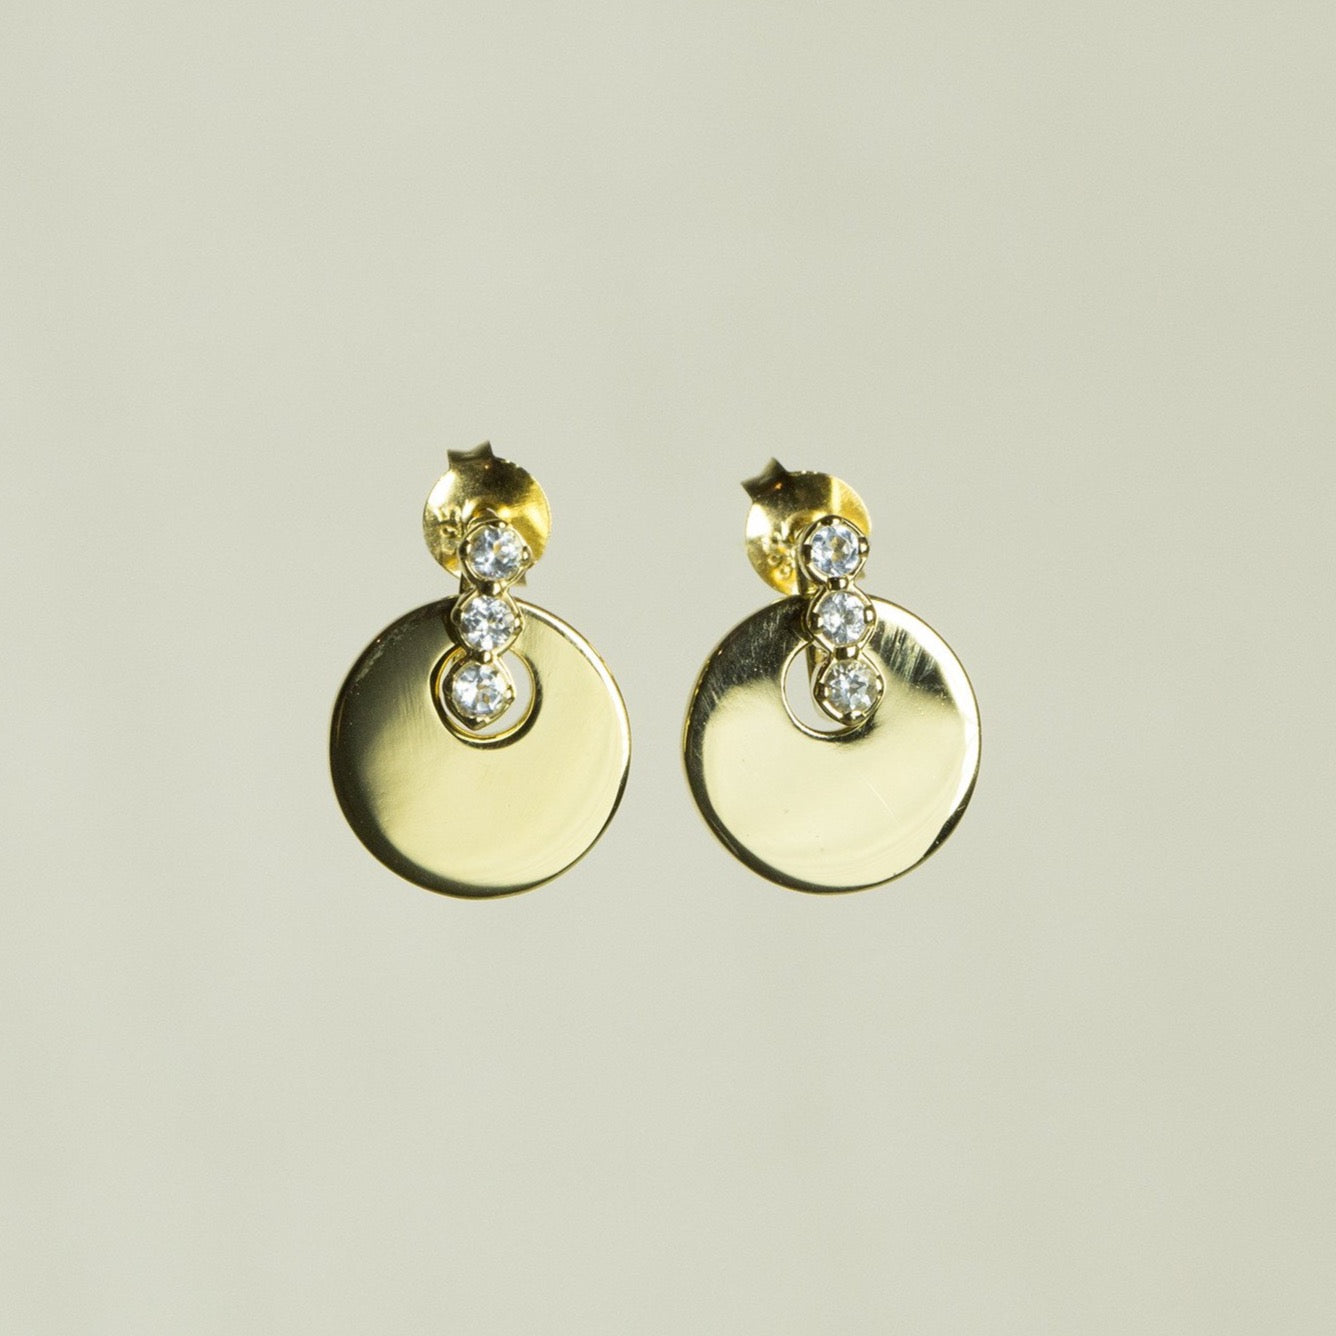 Davina Combe Disc with Stones Drop Earrings